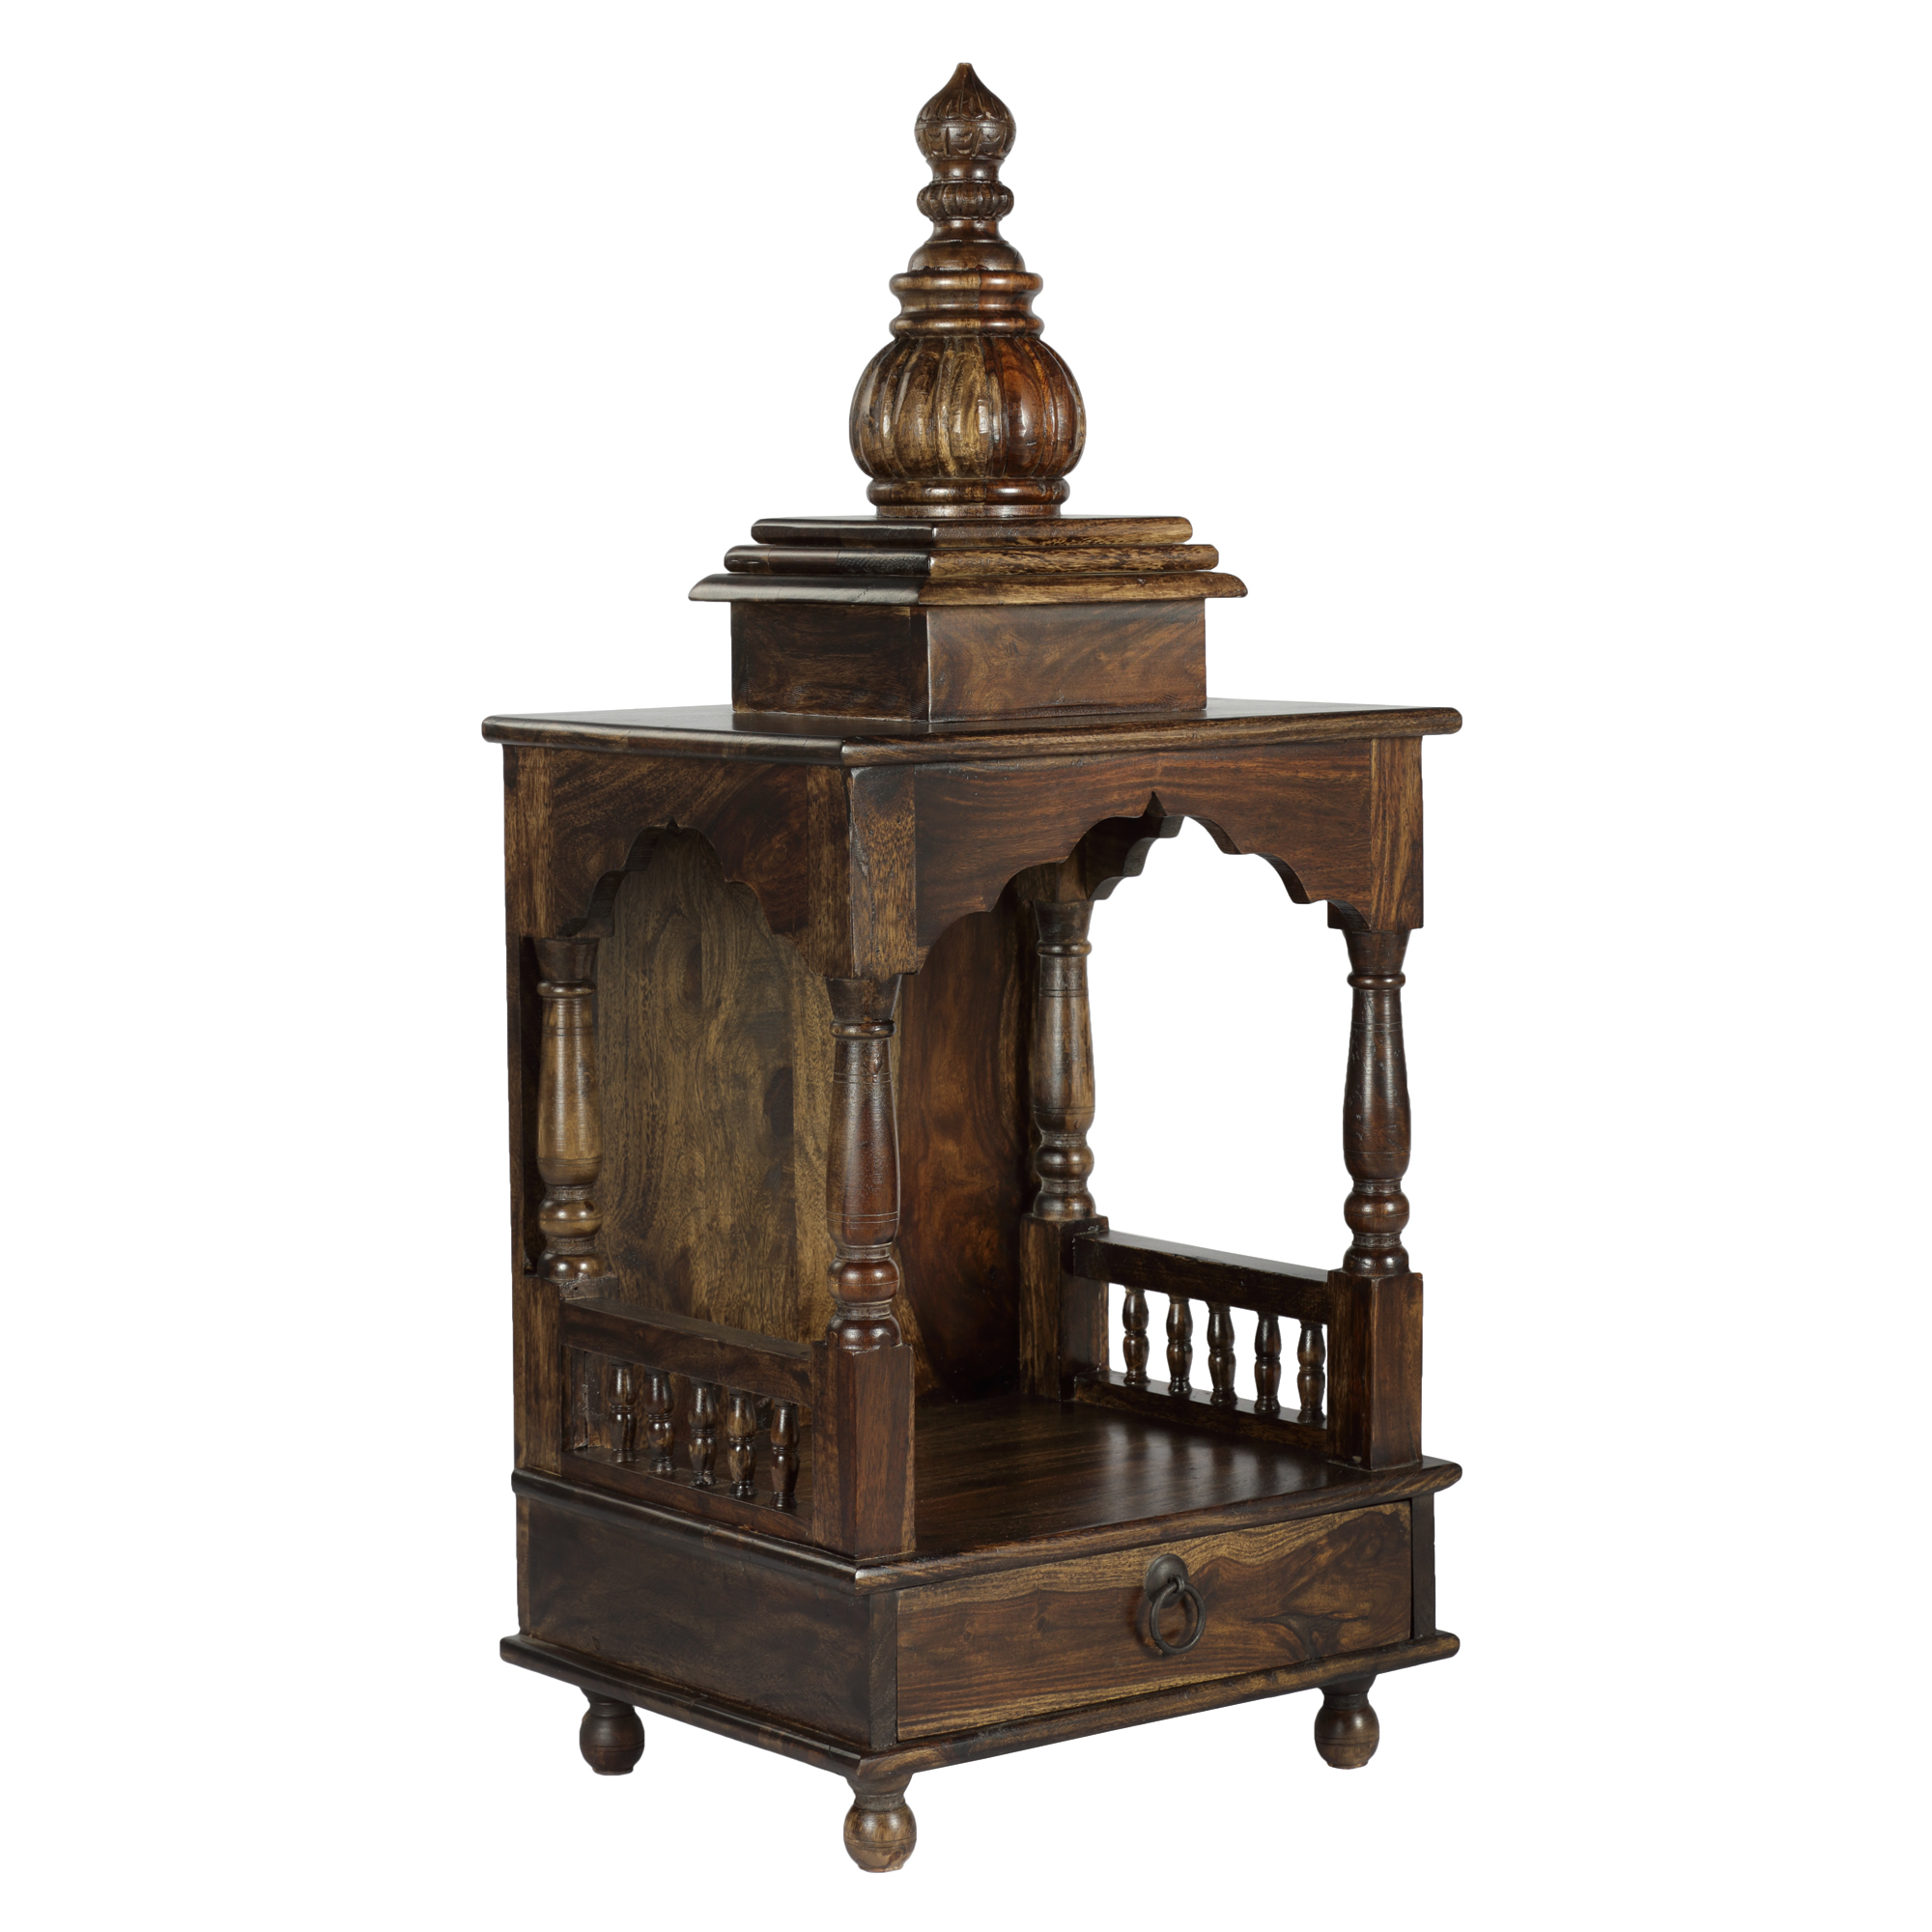 Punya Solidwood Pooja Mandir in Provincial Teak Finish